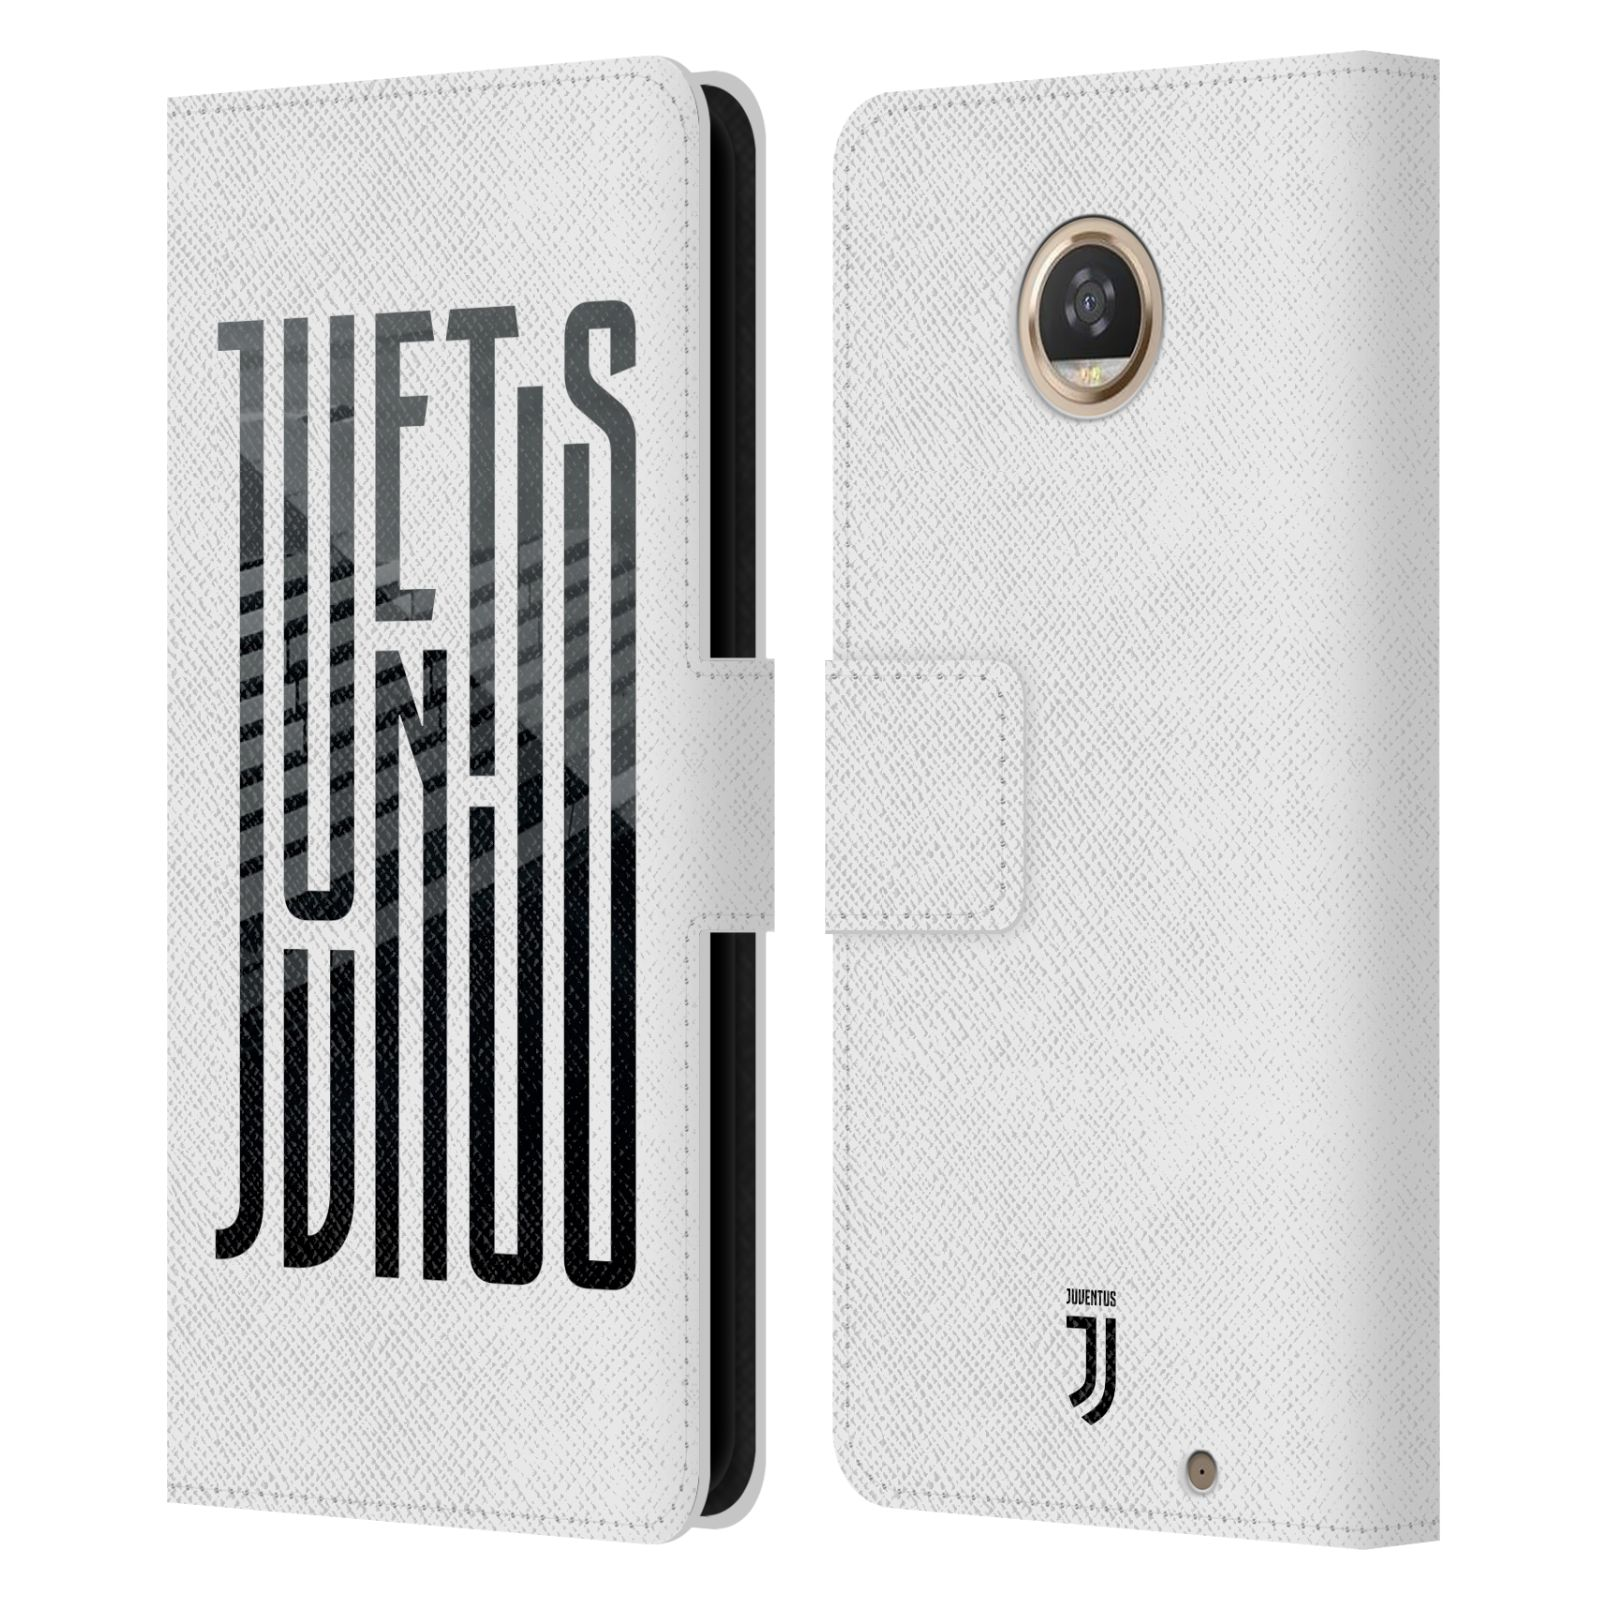 JUVENTUS-FC-2018-19-GRAPHIC-LOGO-LEATHER-BOOK-WALLET-CASE-FOR-MOTOROLA-PHONES